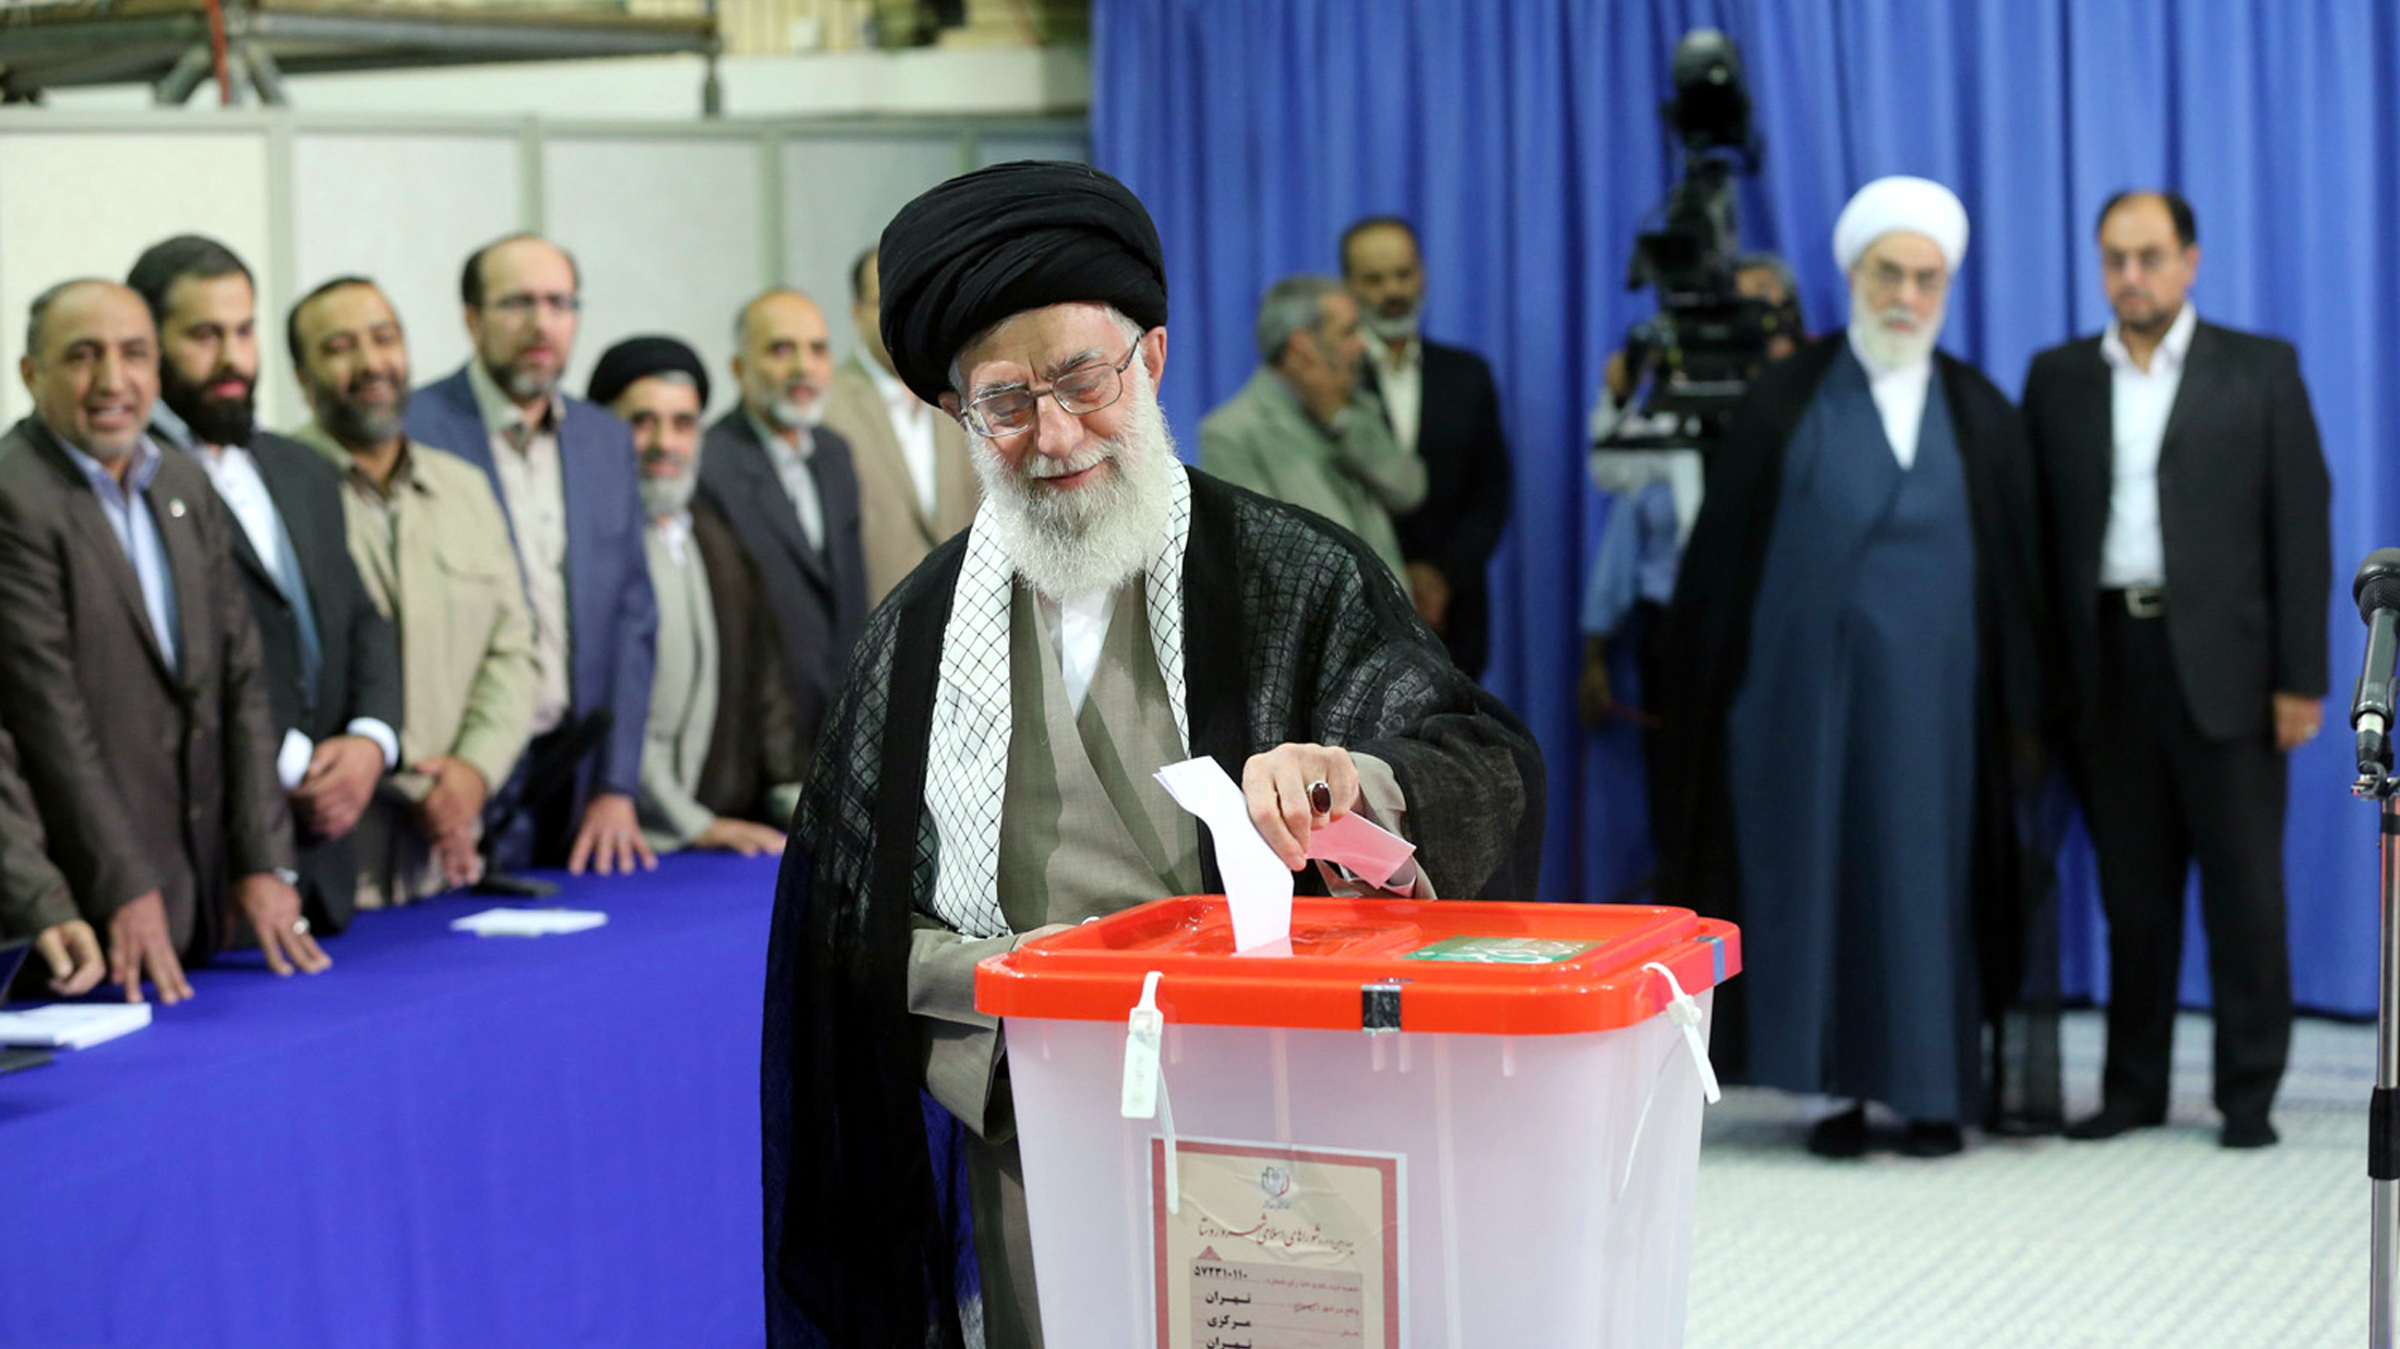 Iran's Supreme Leader Ayatollah Ali Khamenei casts his ballot at his office during the Iranian presidential election in central Tehran June 14, 2013. Iranians voted for a new president on Friday urged by Khamenei to turn out in force to discredit suggestions by arch foe the United States that the election would be unfair.